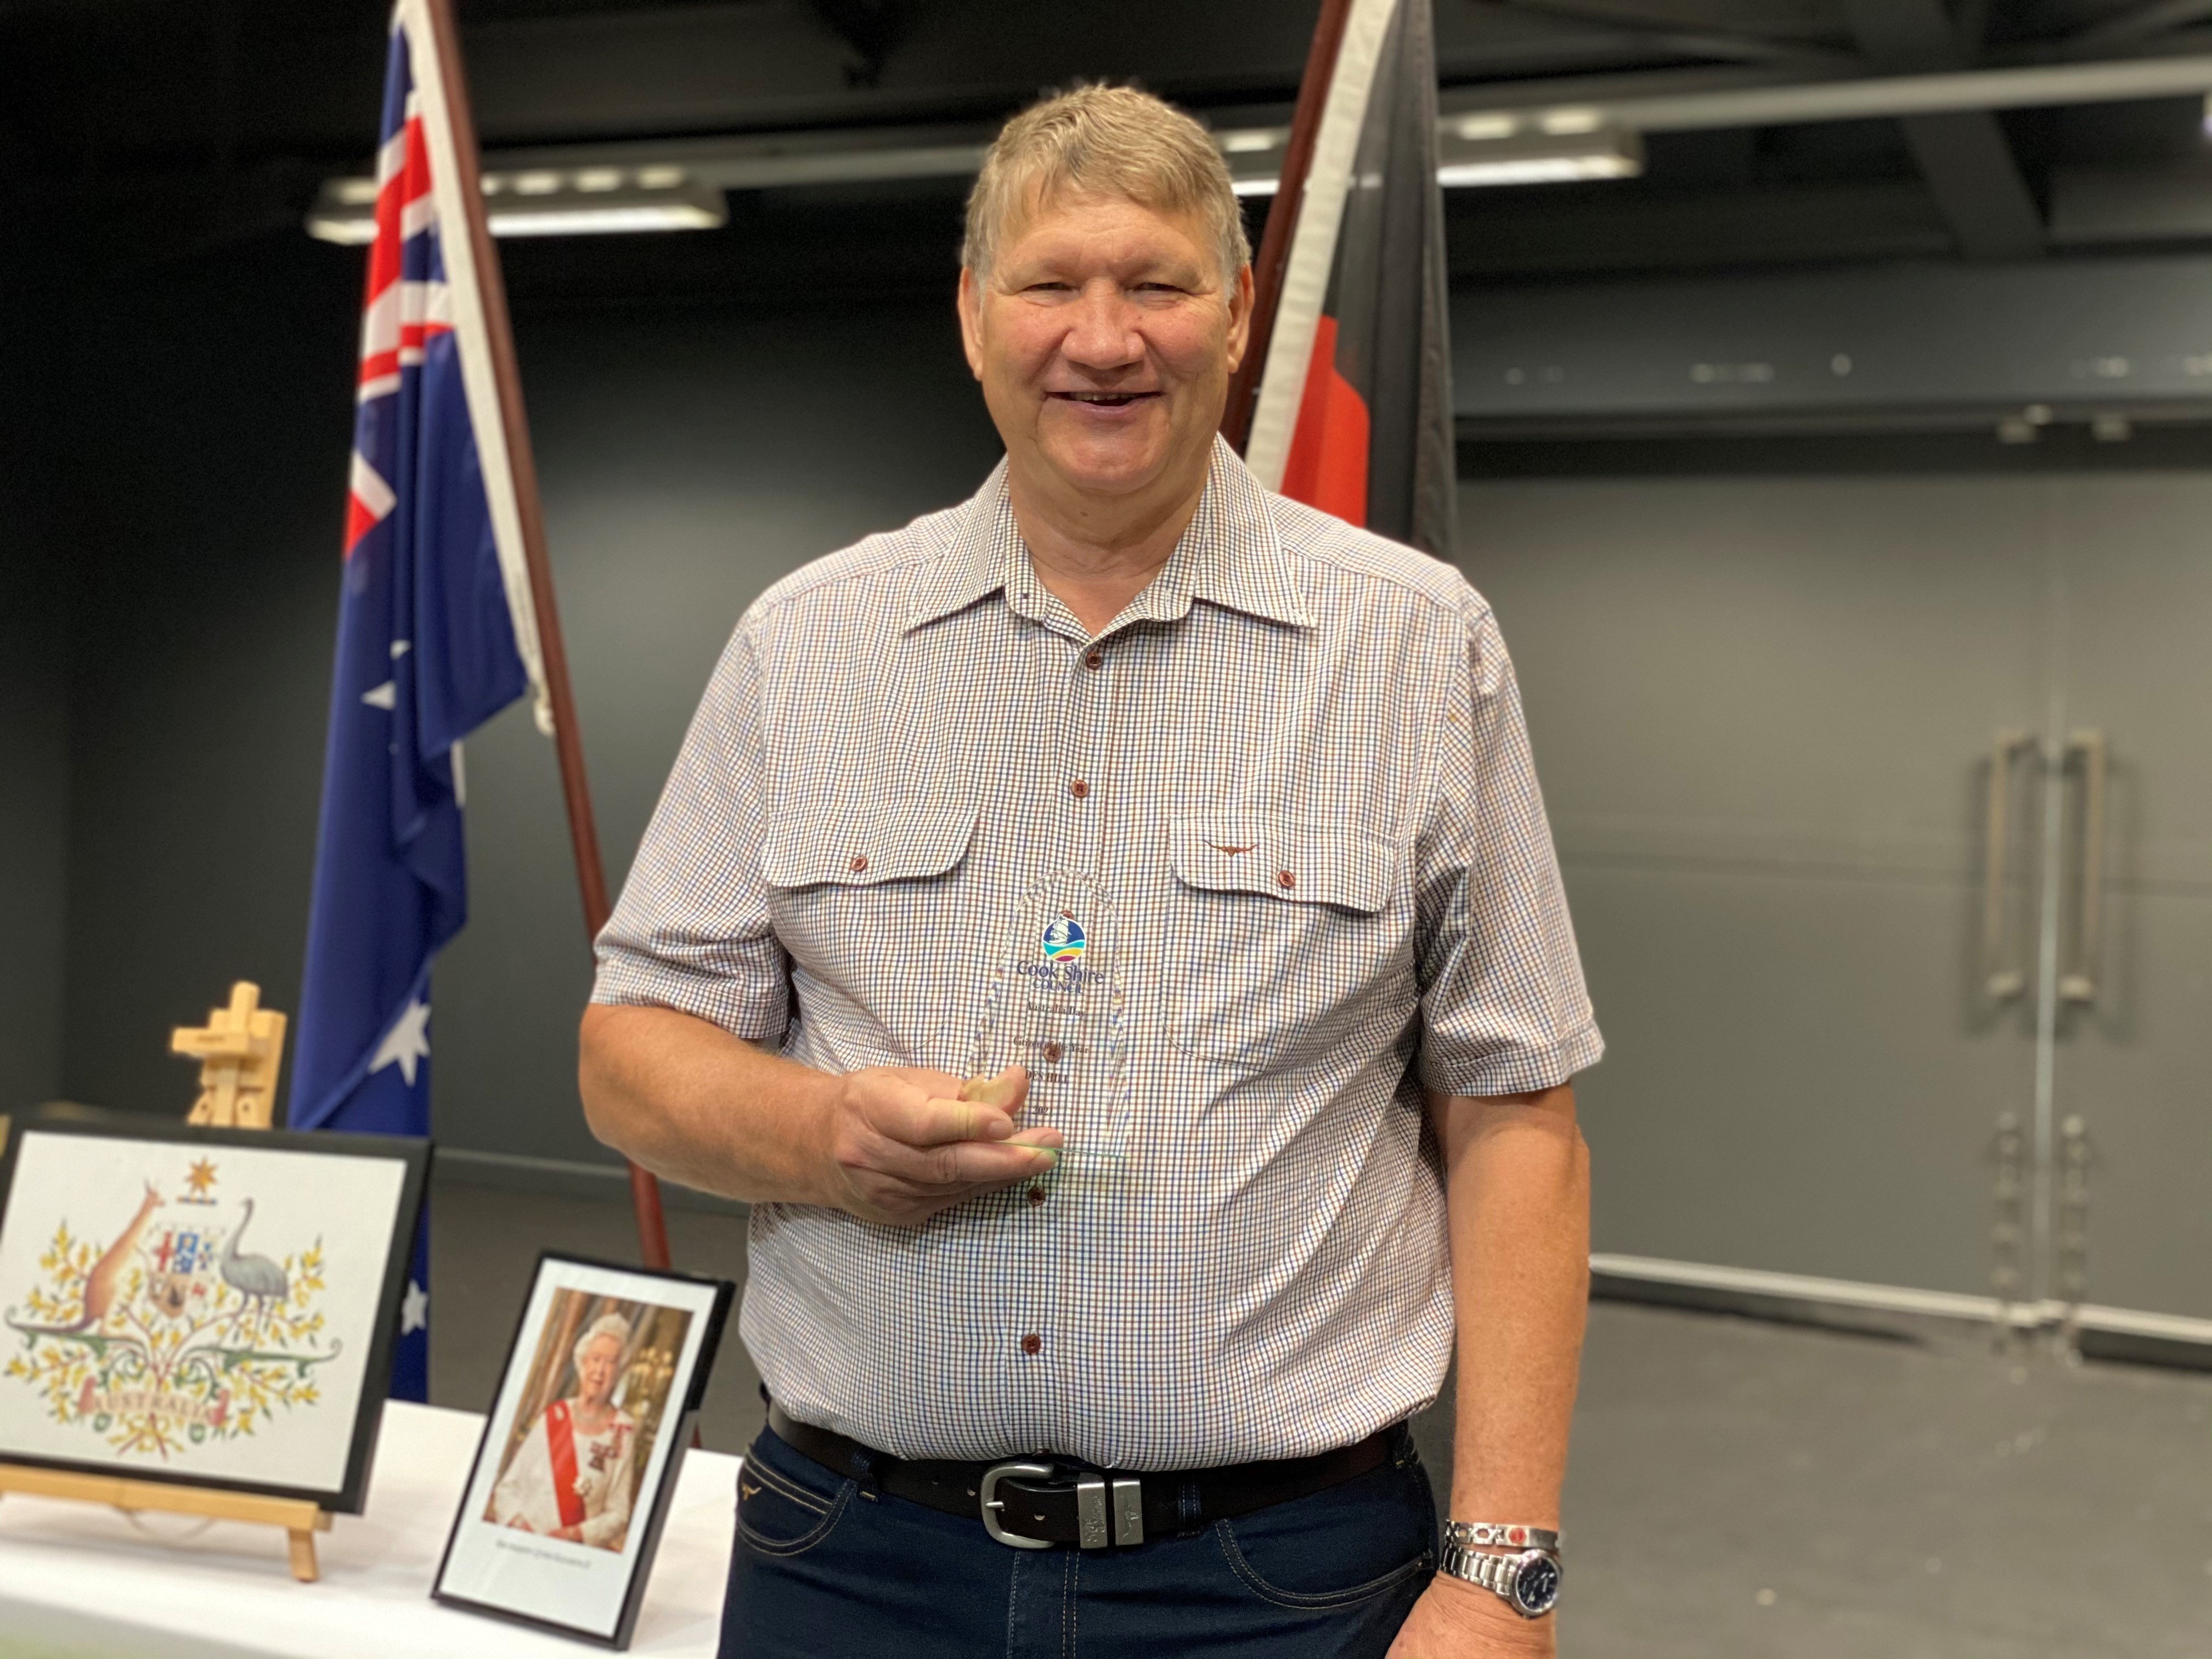 Cook Shire Citizen of the Year Dr Des Hill